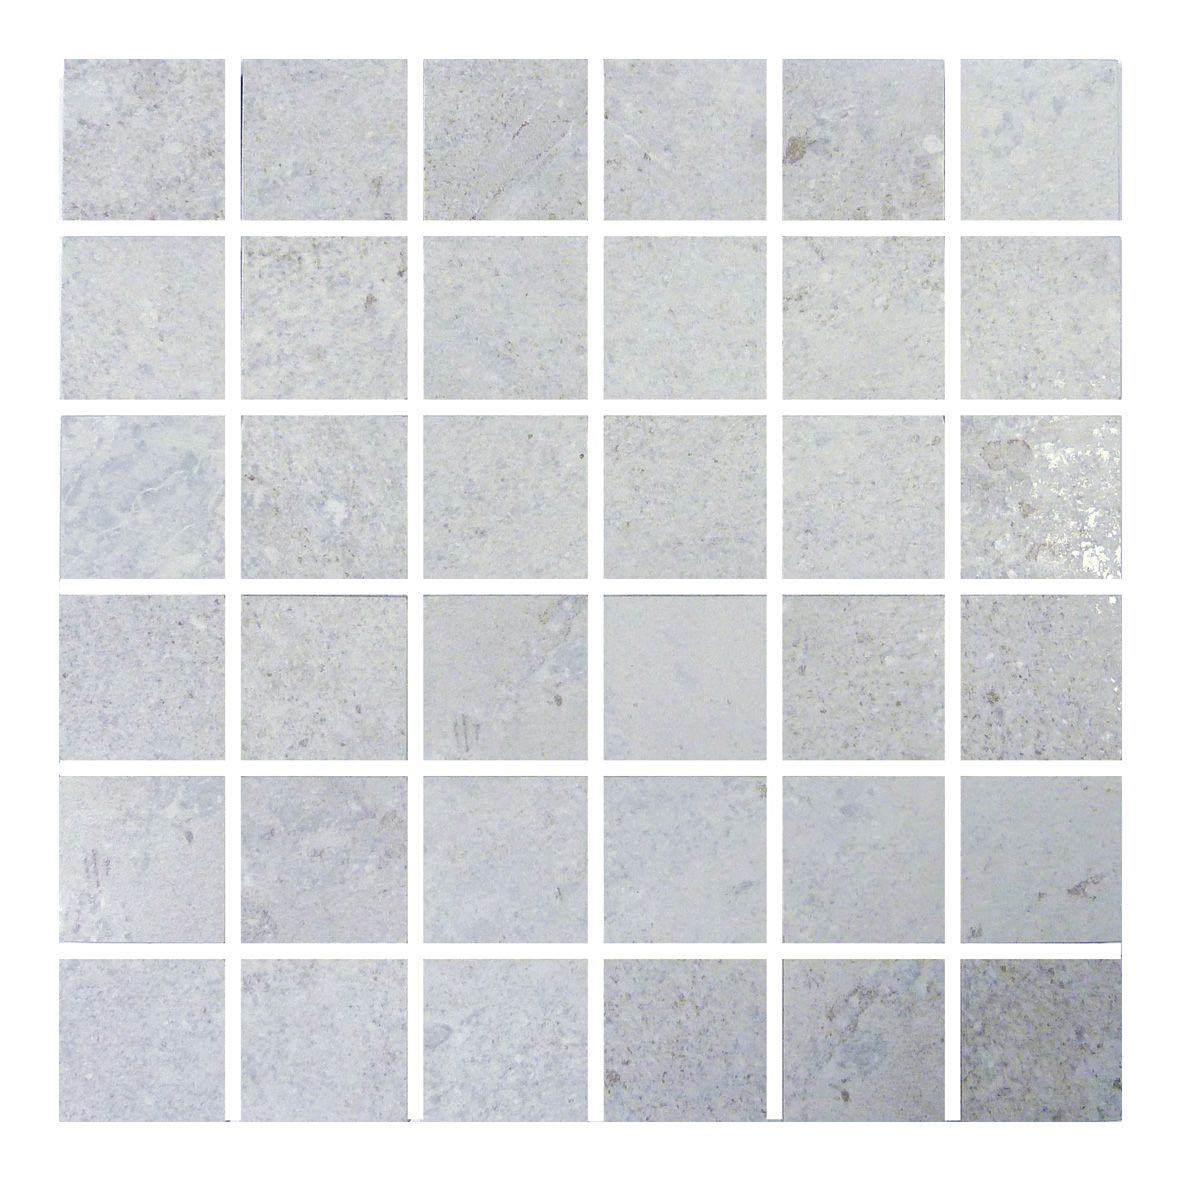 Gemini Hillock Light Grey Mosaic Bathroom, Kitchen ...